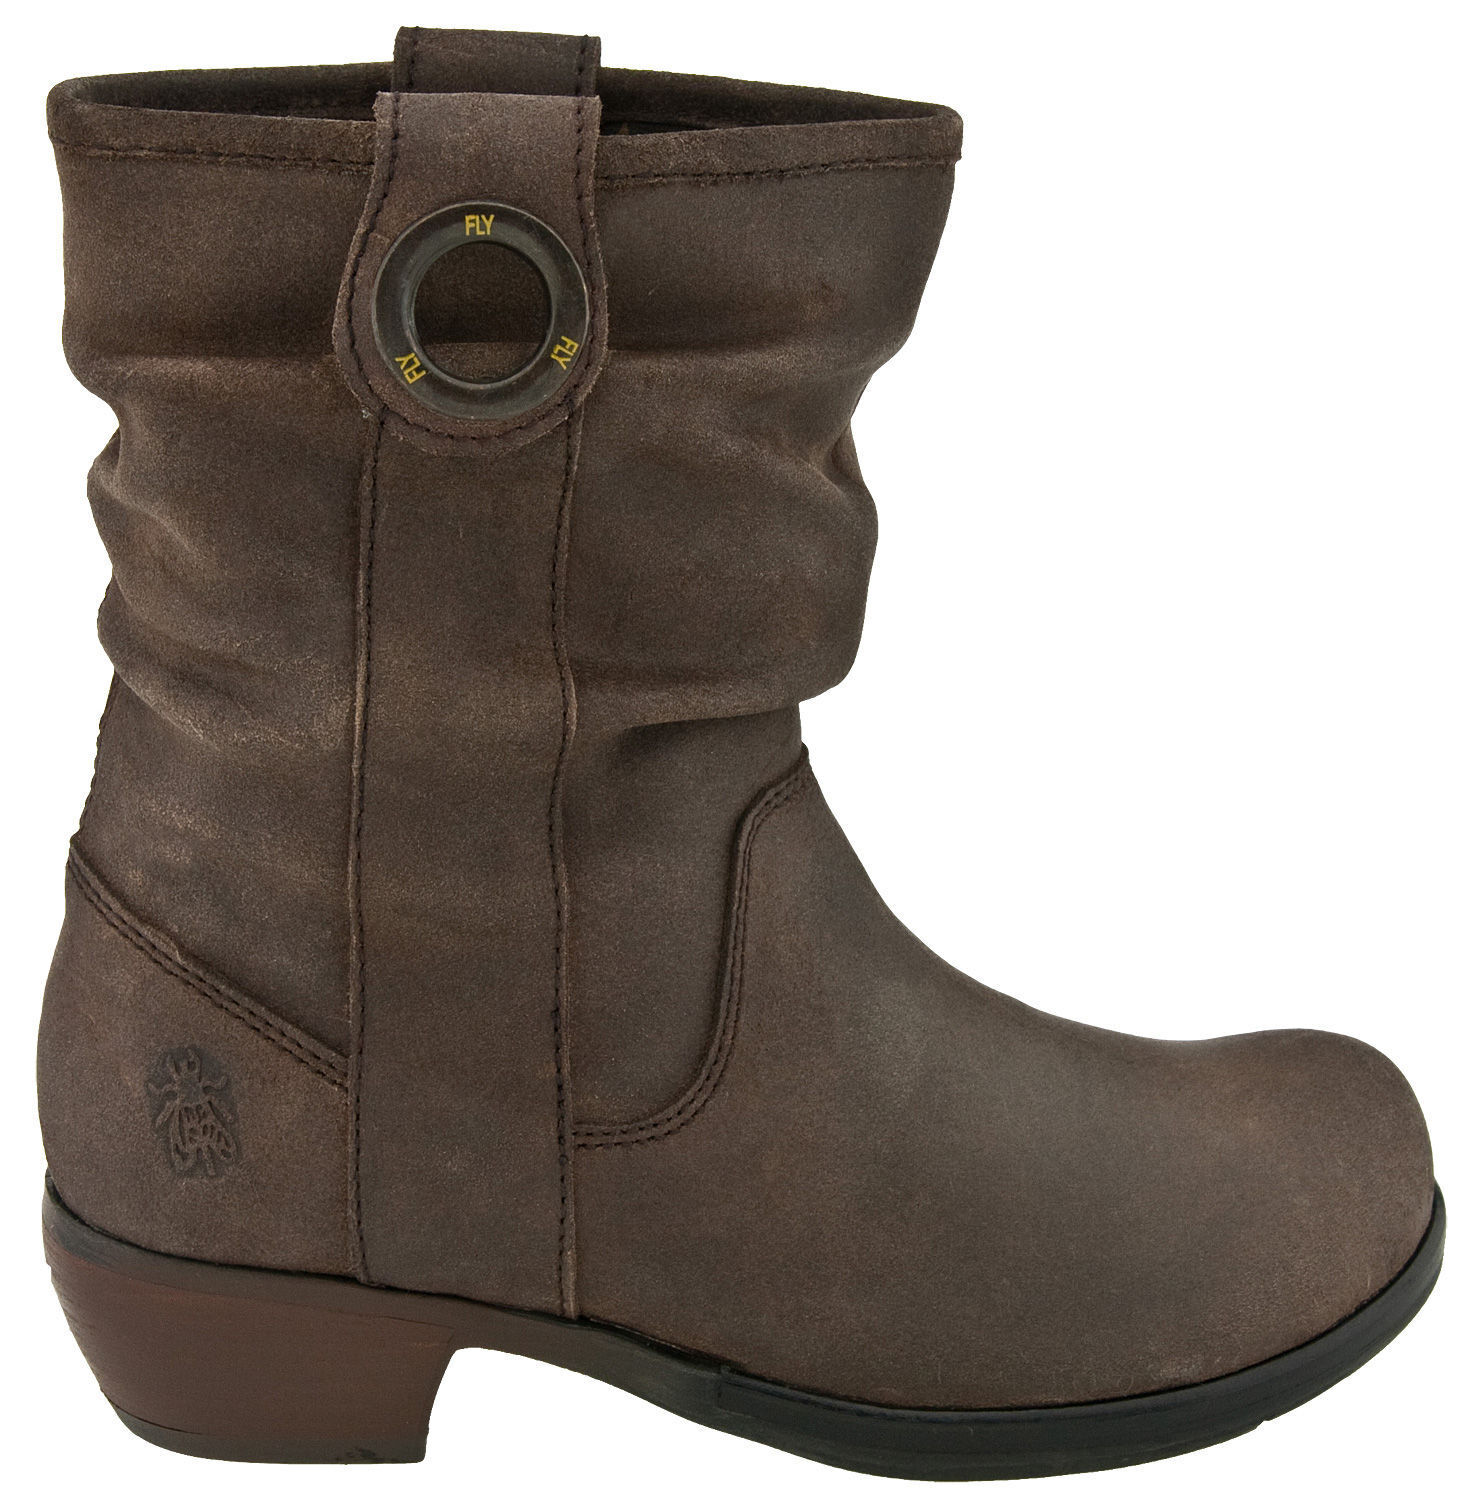 FLY LONDON MARY DESIGNER BROWN LEATHER PULL ON SLOUCH BOOTS UK 4 EUR 37